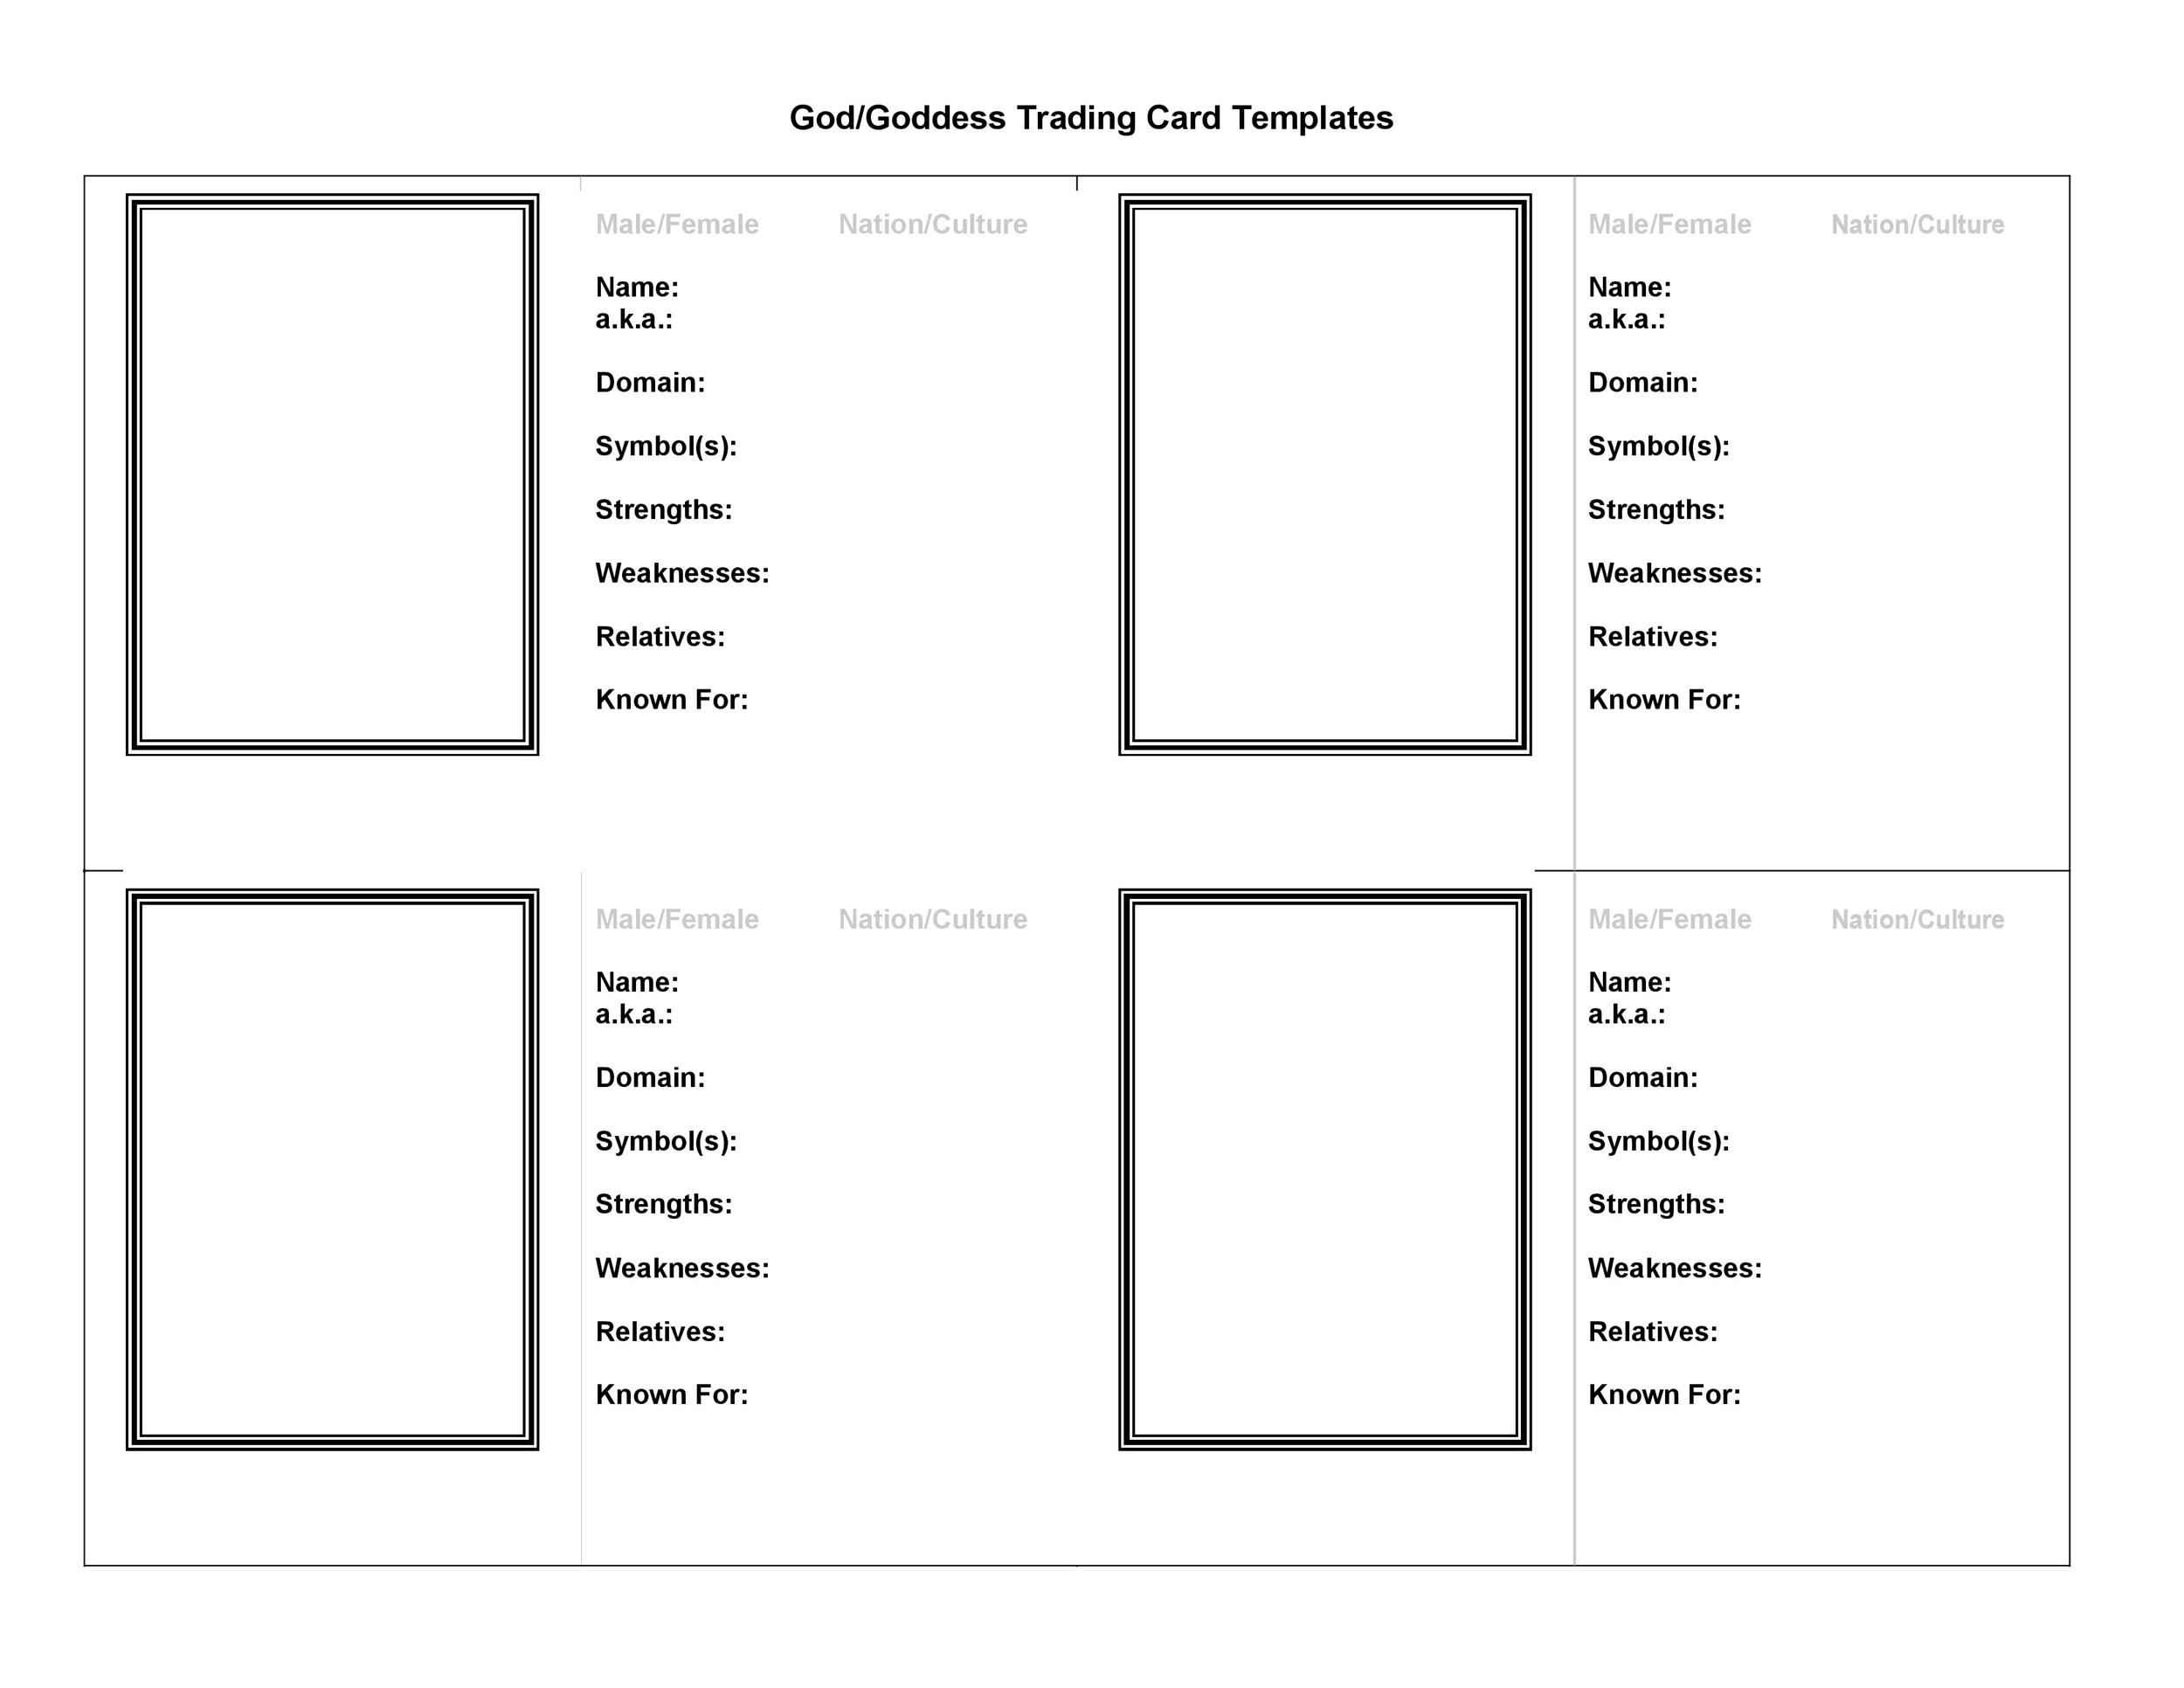 33 Free Trading Card Templates (Baseball, Football, etc